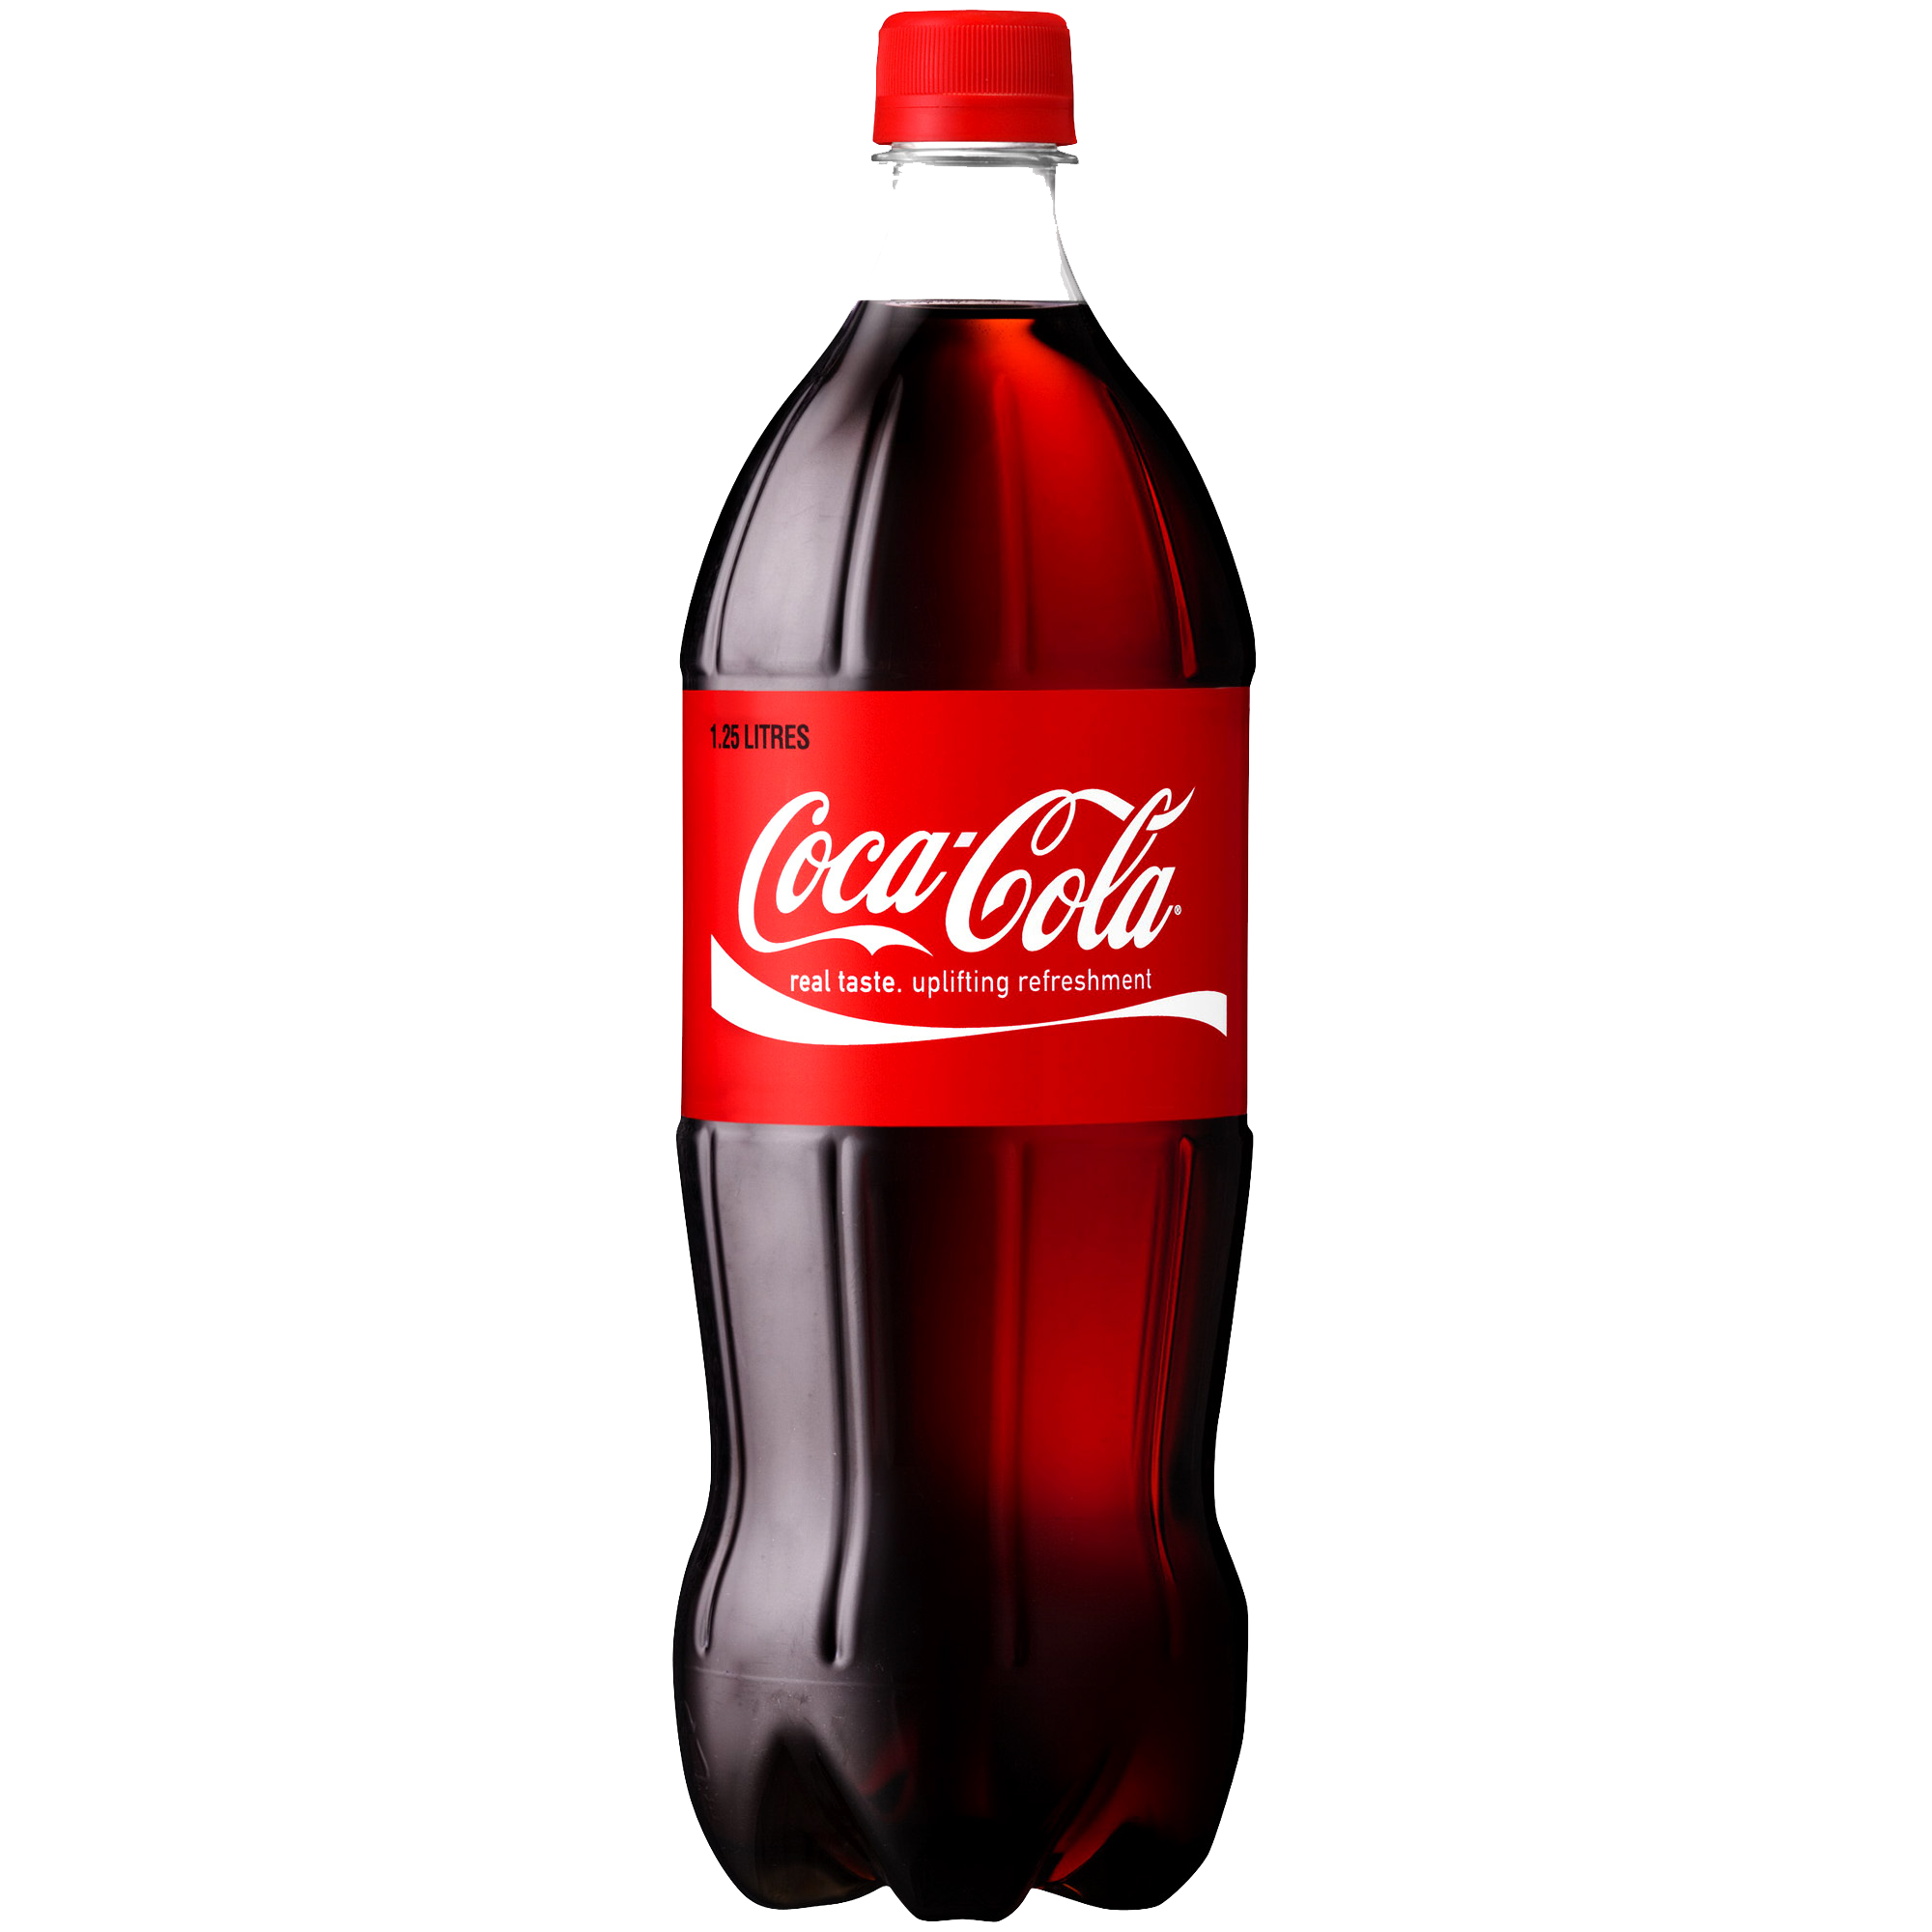 Coke Png, png collections at sccpre.cat.